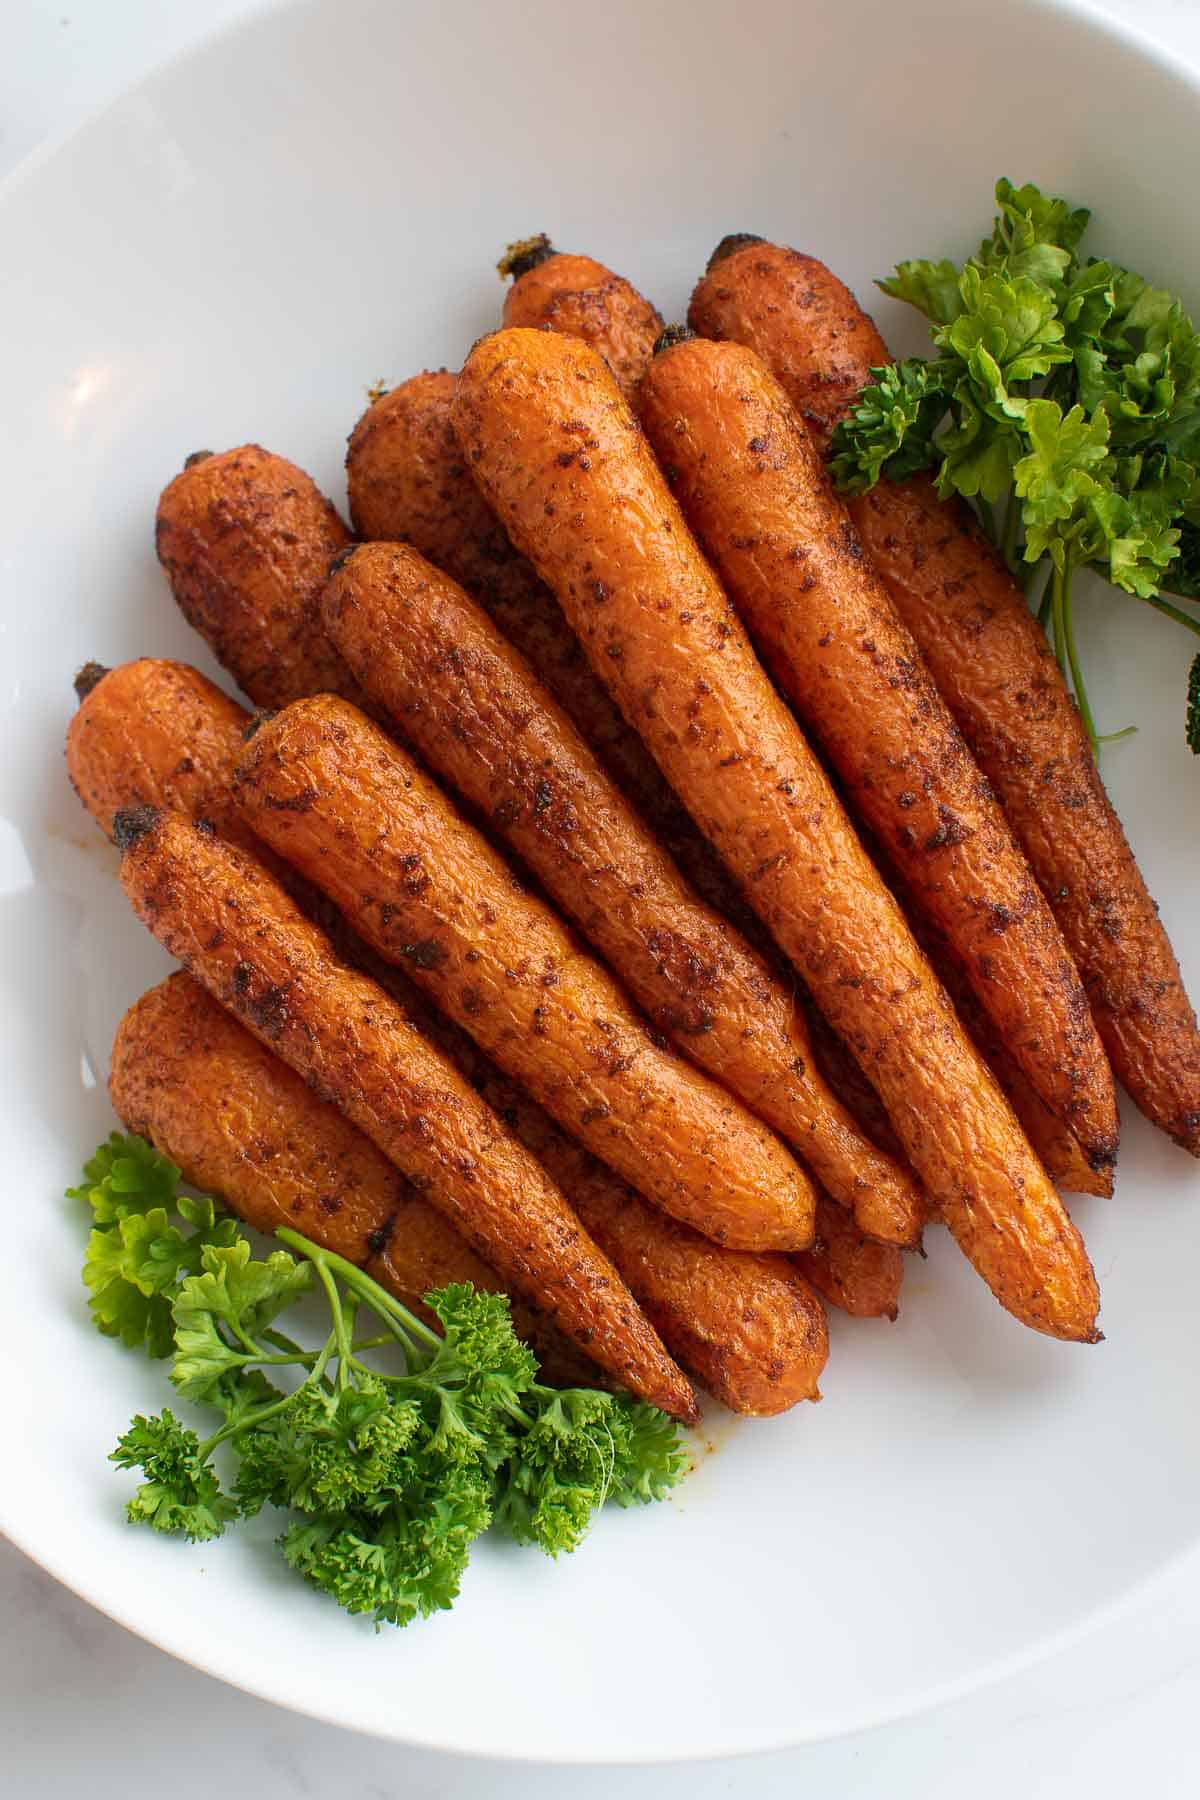 Close up of the roasted carrots.